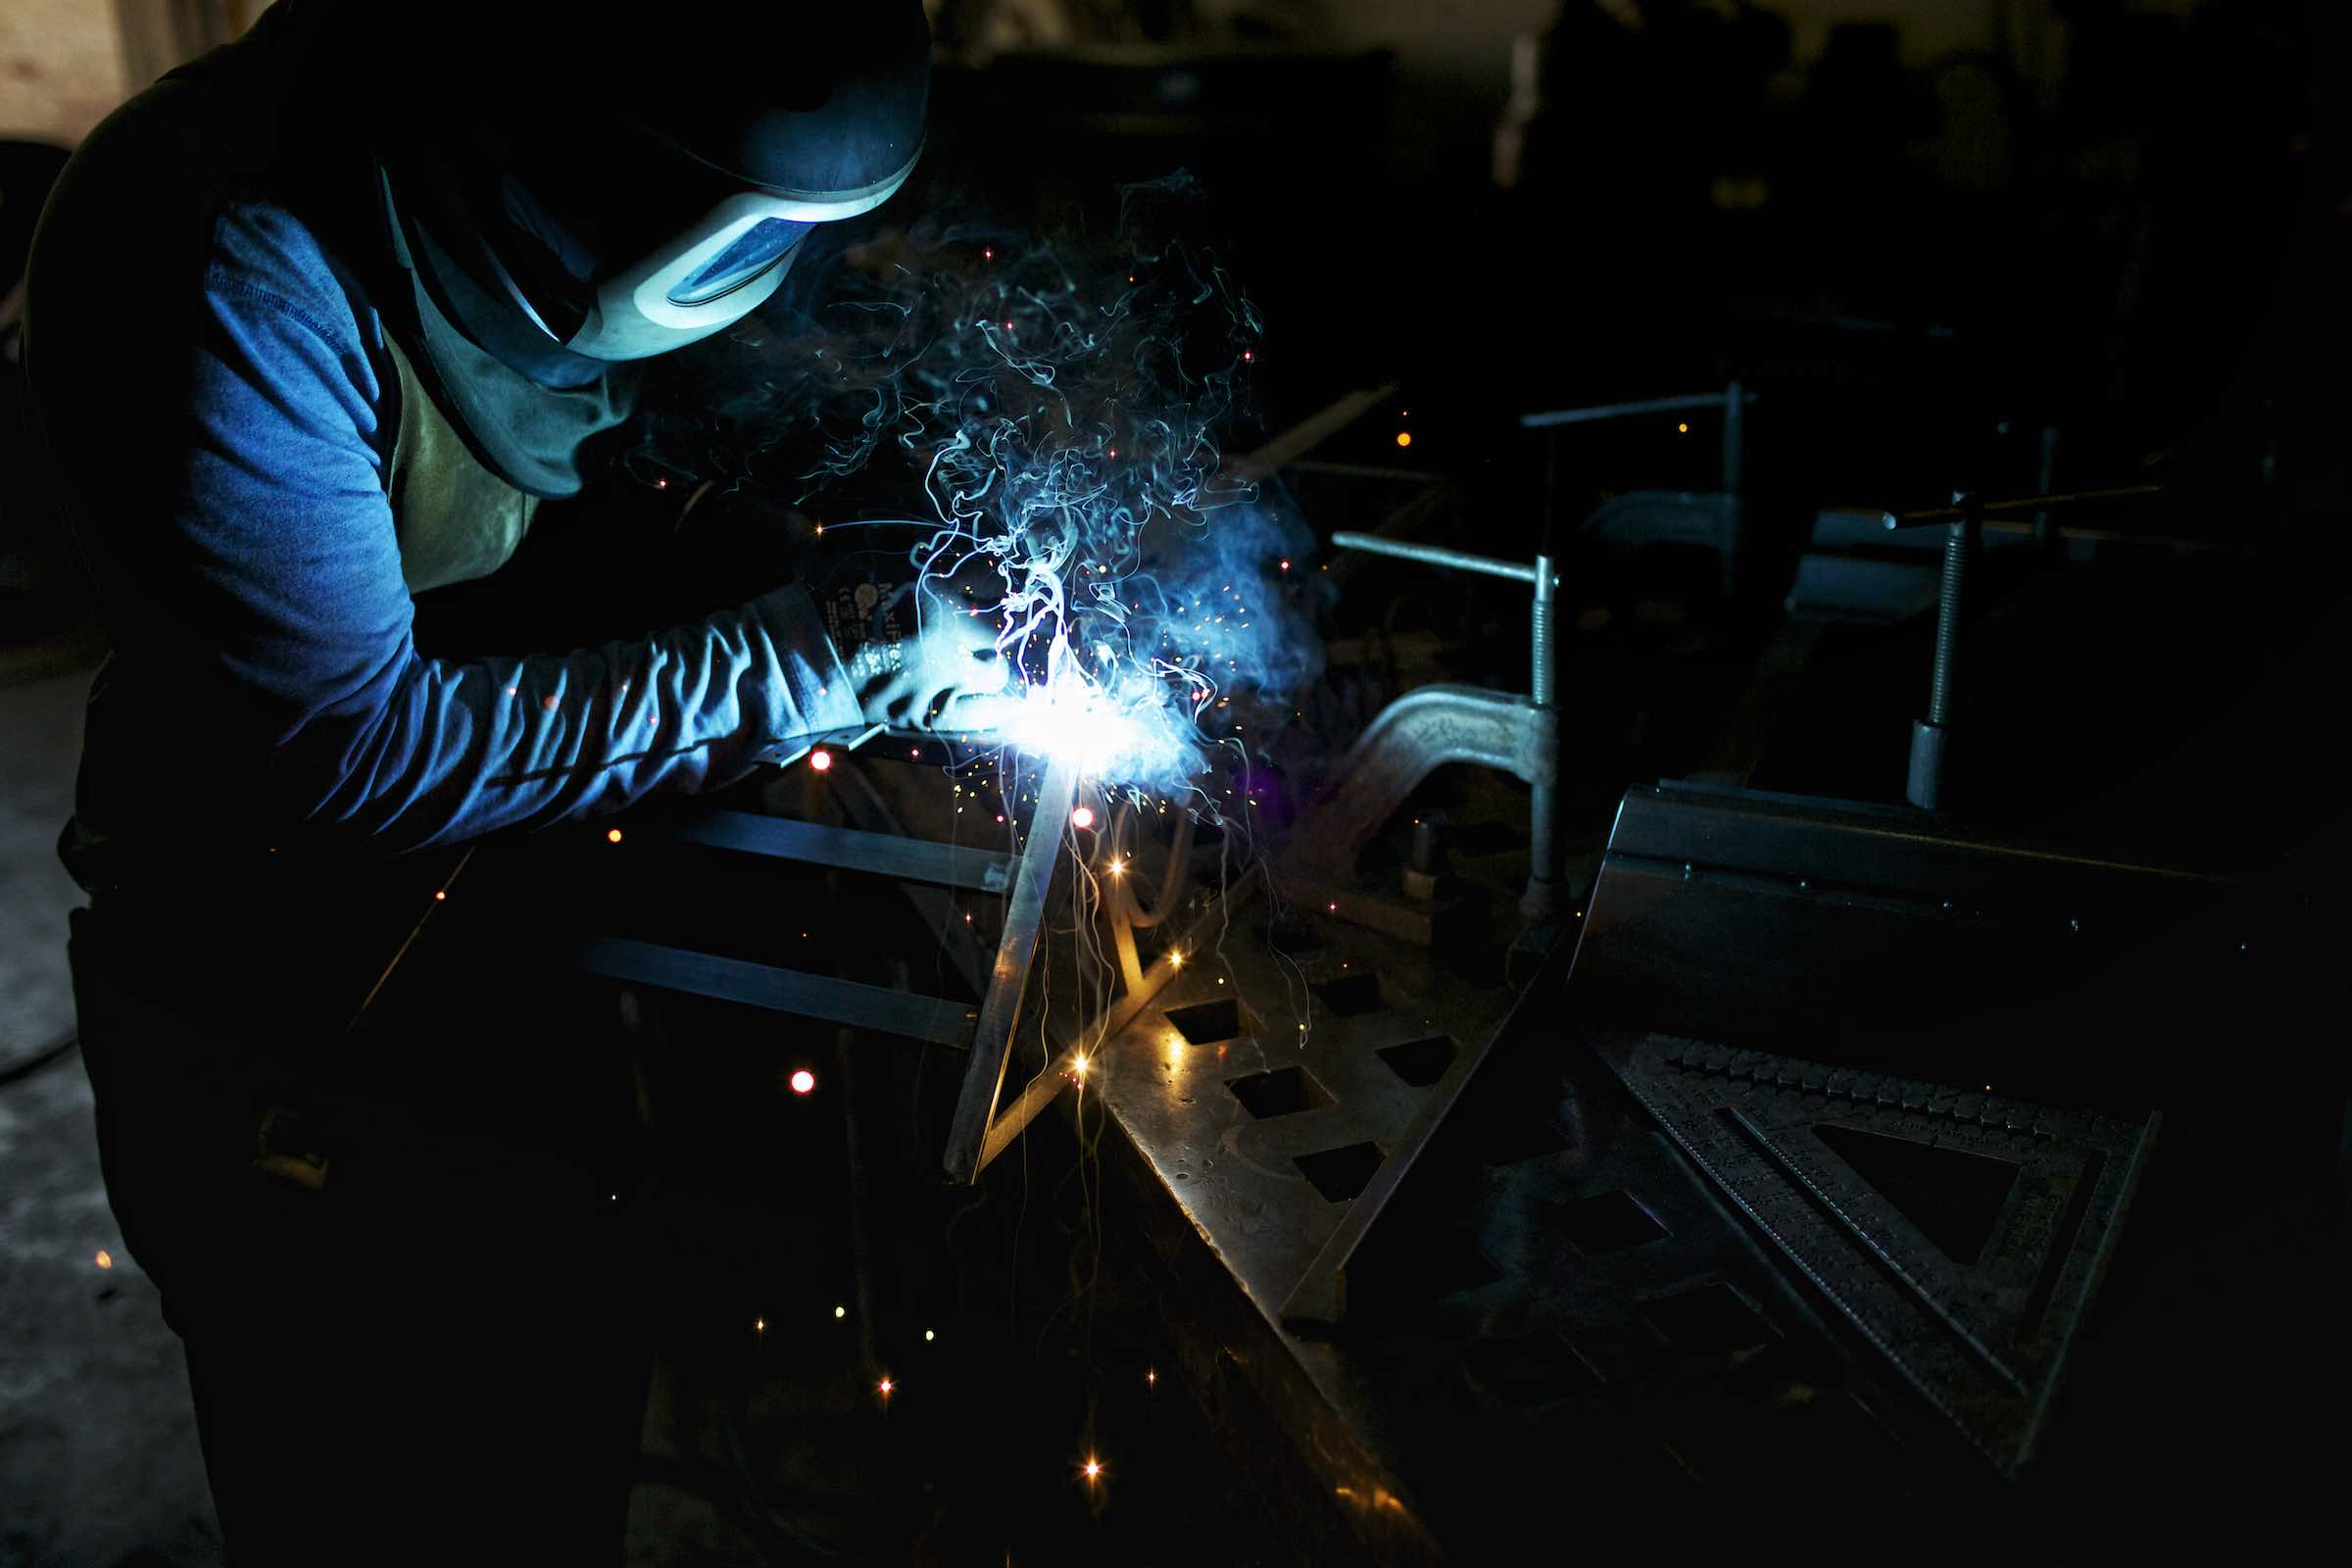 Jody Horton Photography - Welder working on a piece of metal creating blue flames and sparks,